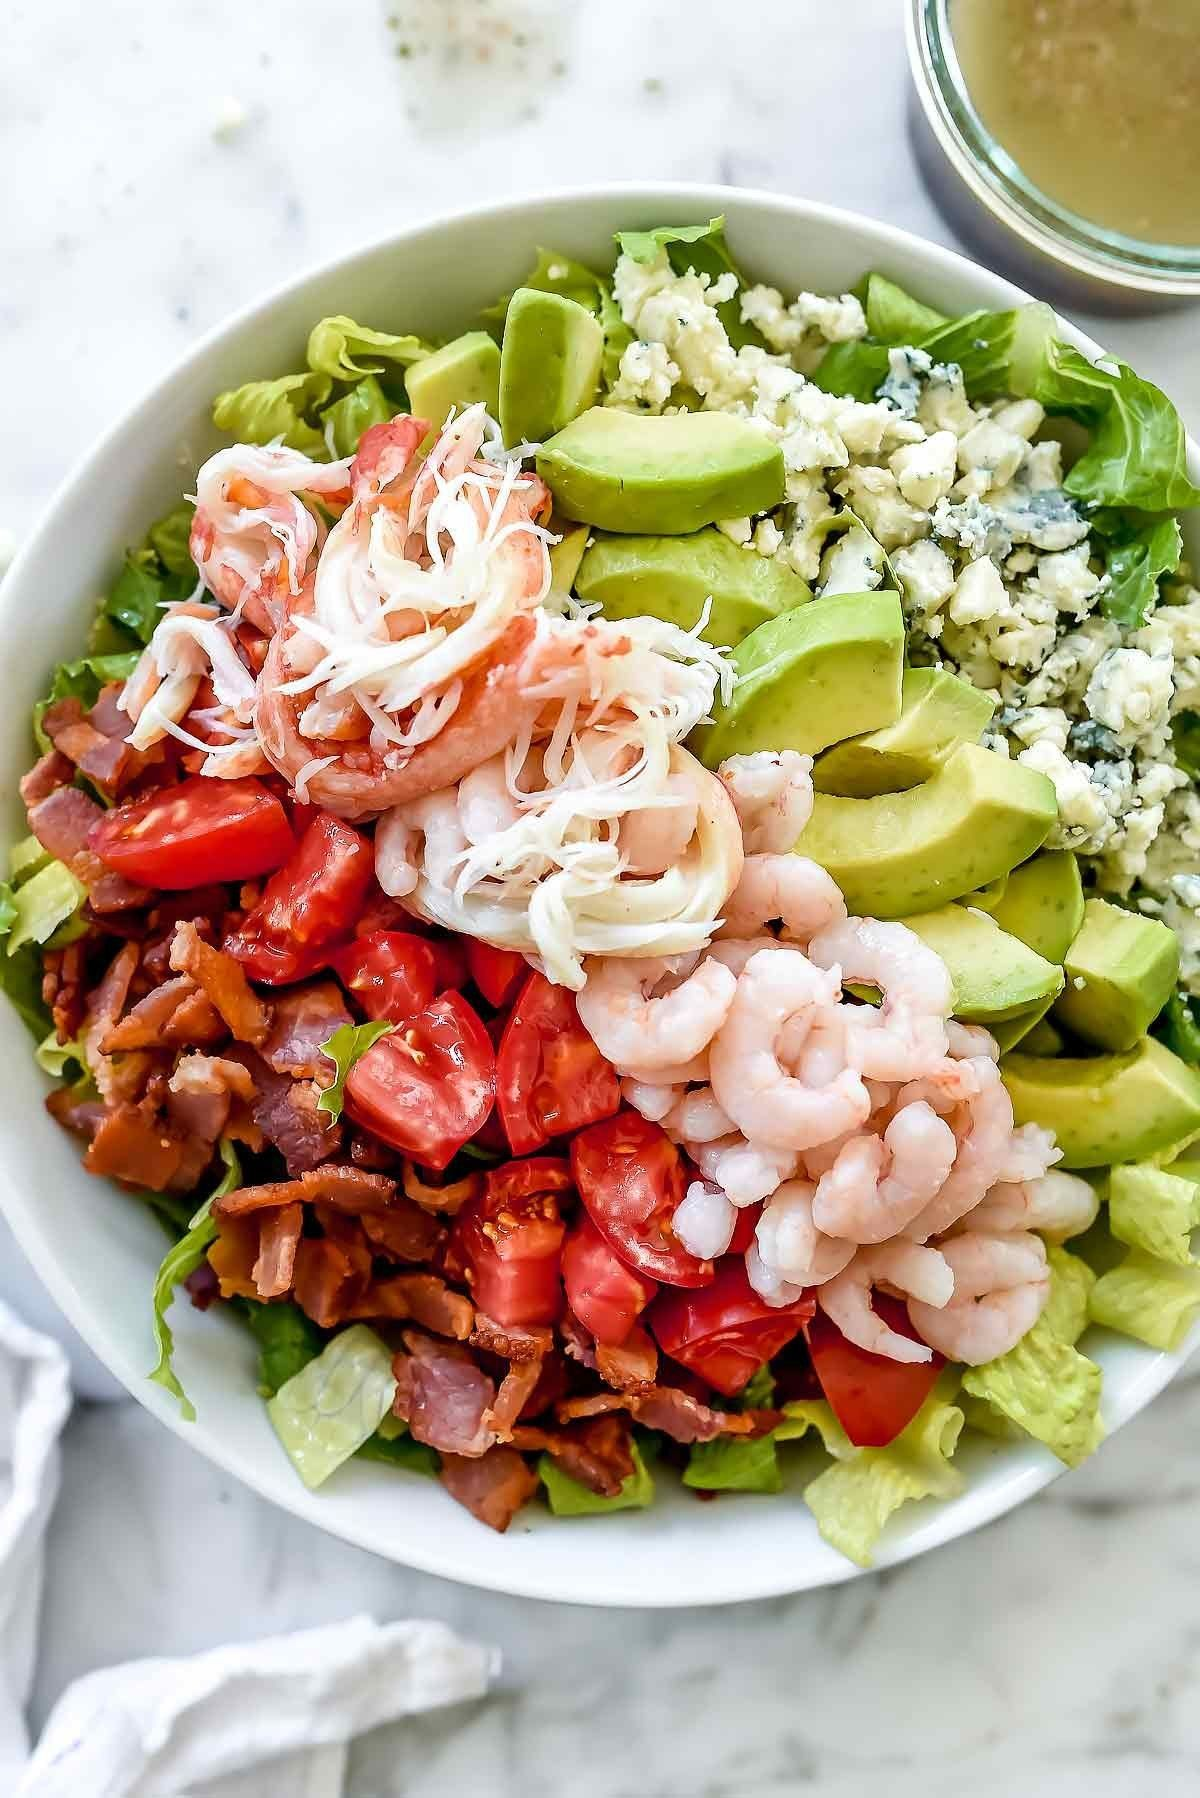 Crab And Shrimp Seafood Cobb Salad By Foodiecrush Recipe Cobb Salad Recipe Salad Seafood Salad